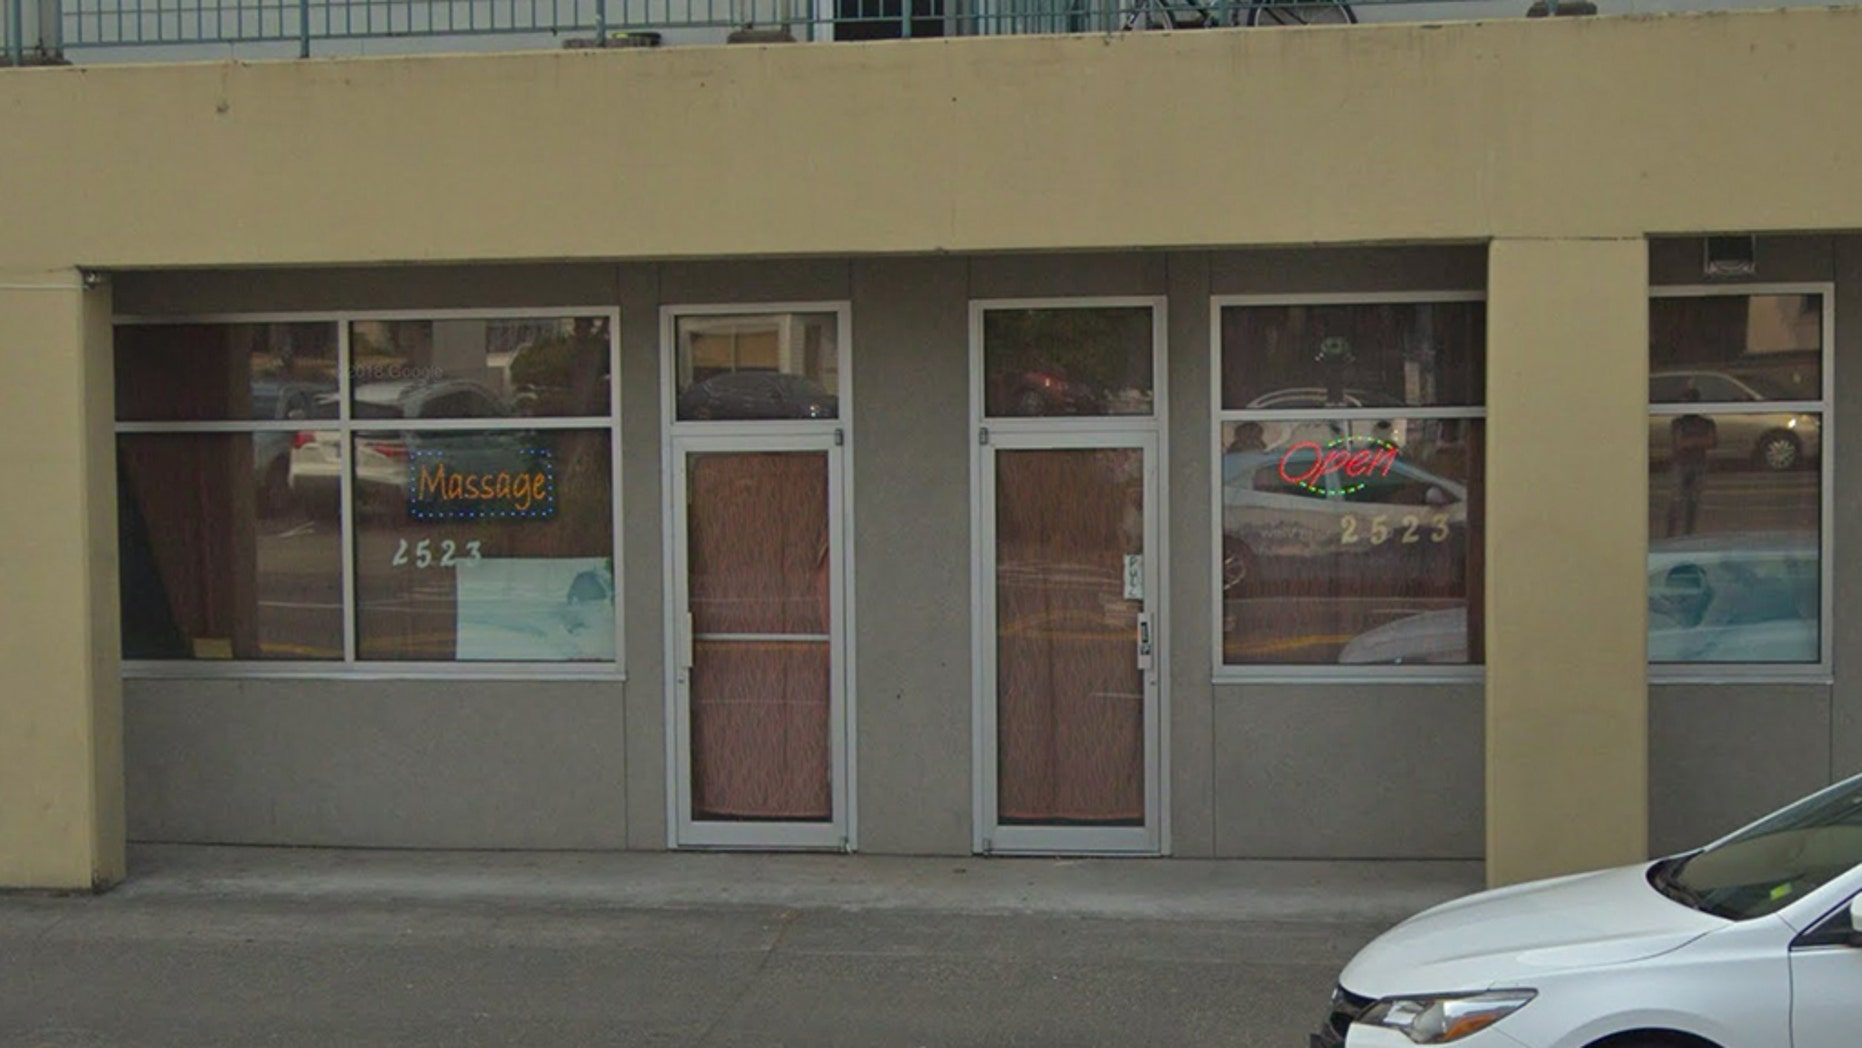 """26 women were freed from massage parlors in the Seattle area. One storefront was known as """"Magic Touch"""" to those soliciting sex and was on the police radar."""